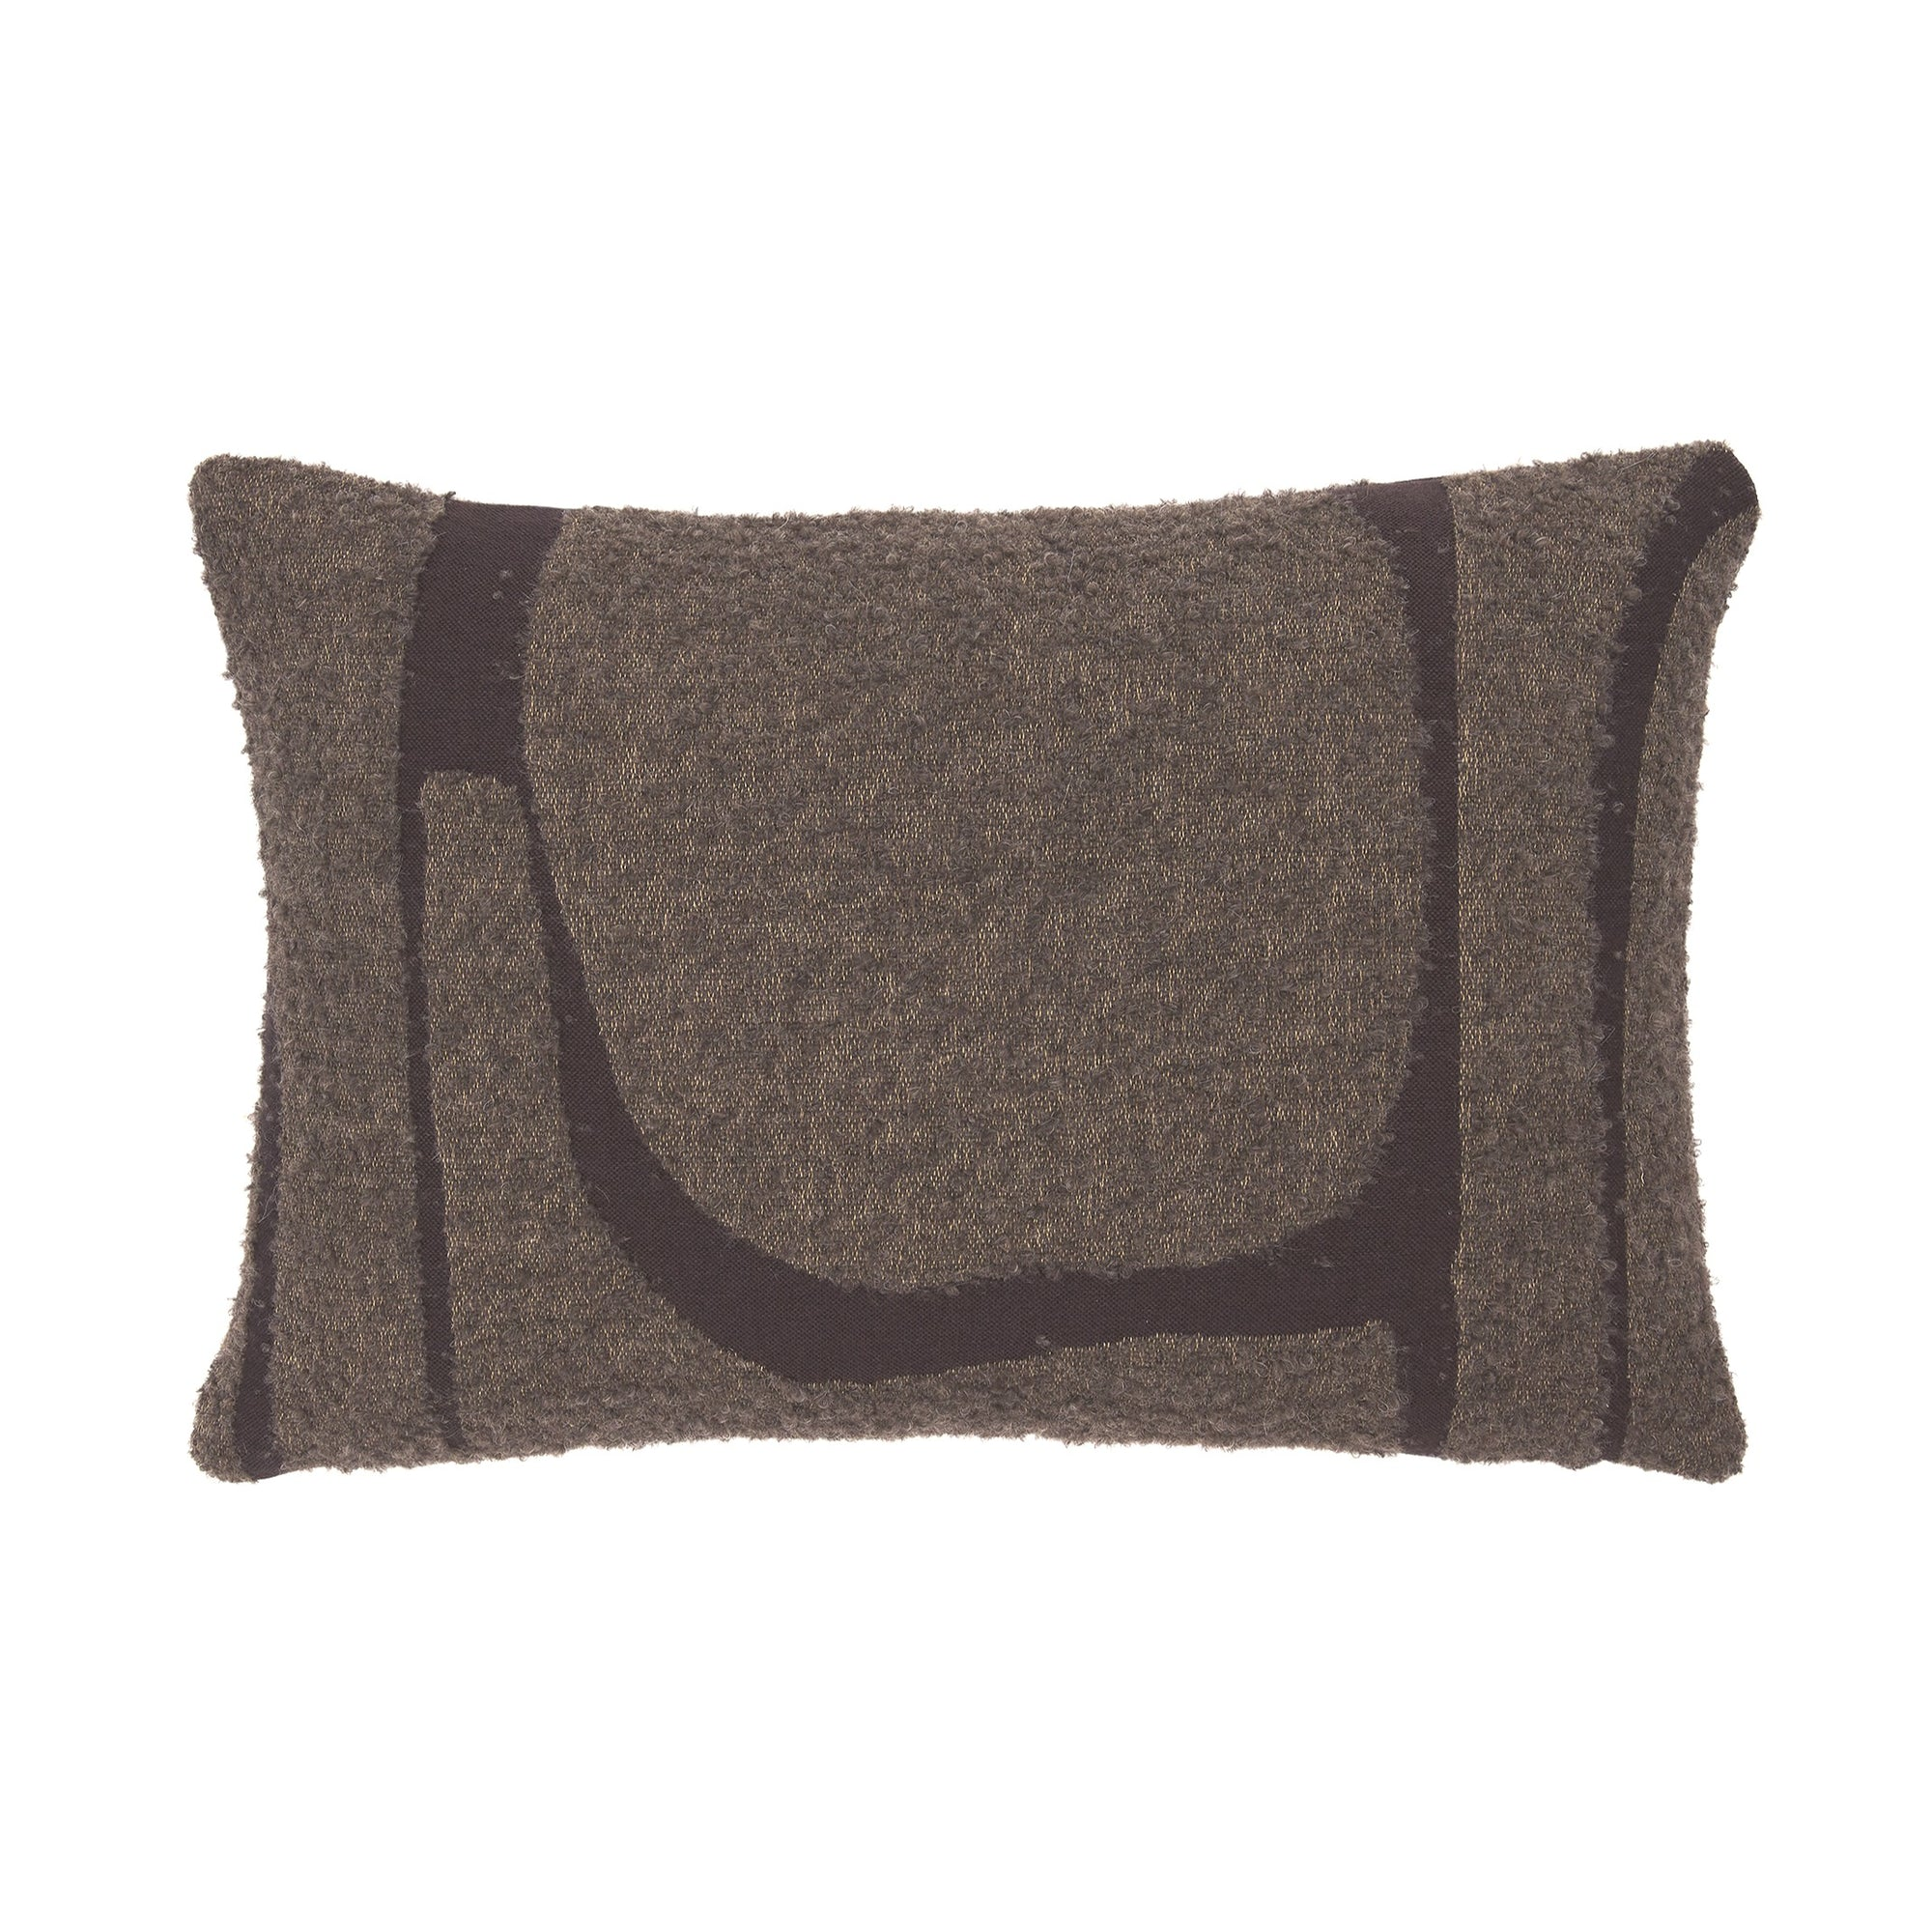 Moro Abstract cushion